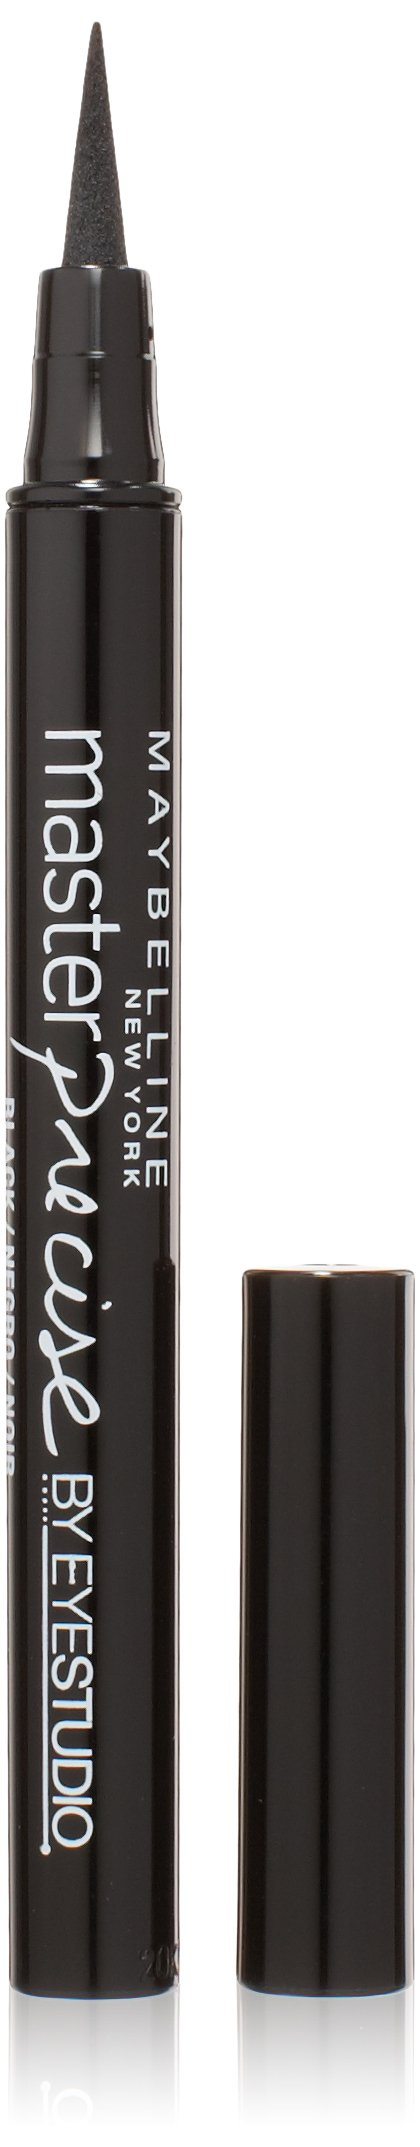 Maybelline New York Eye Studio Master Precise Liquid Eyeliner, Black, 0.037 fl. Oz.